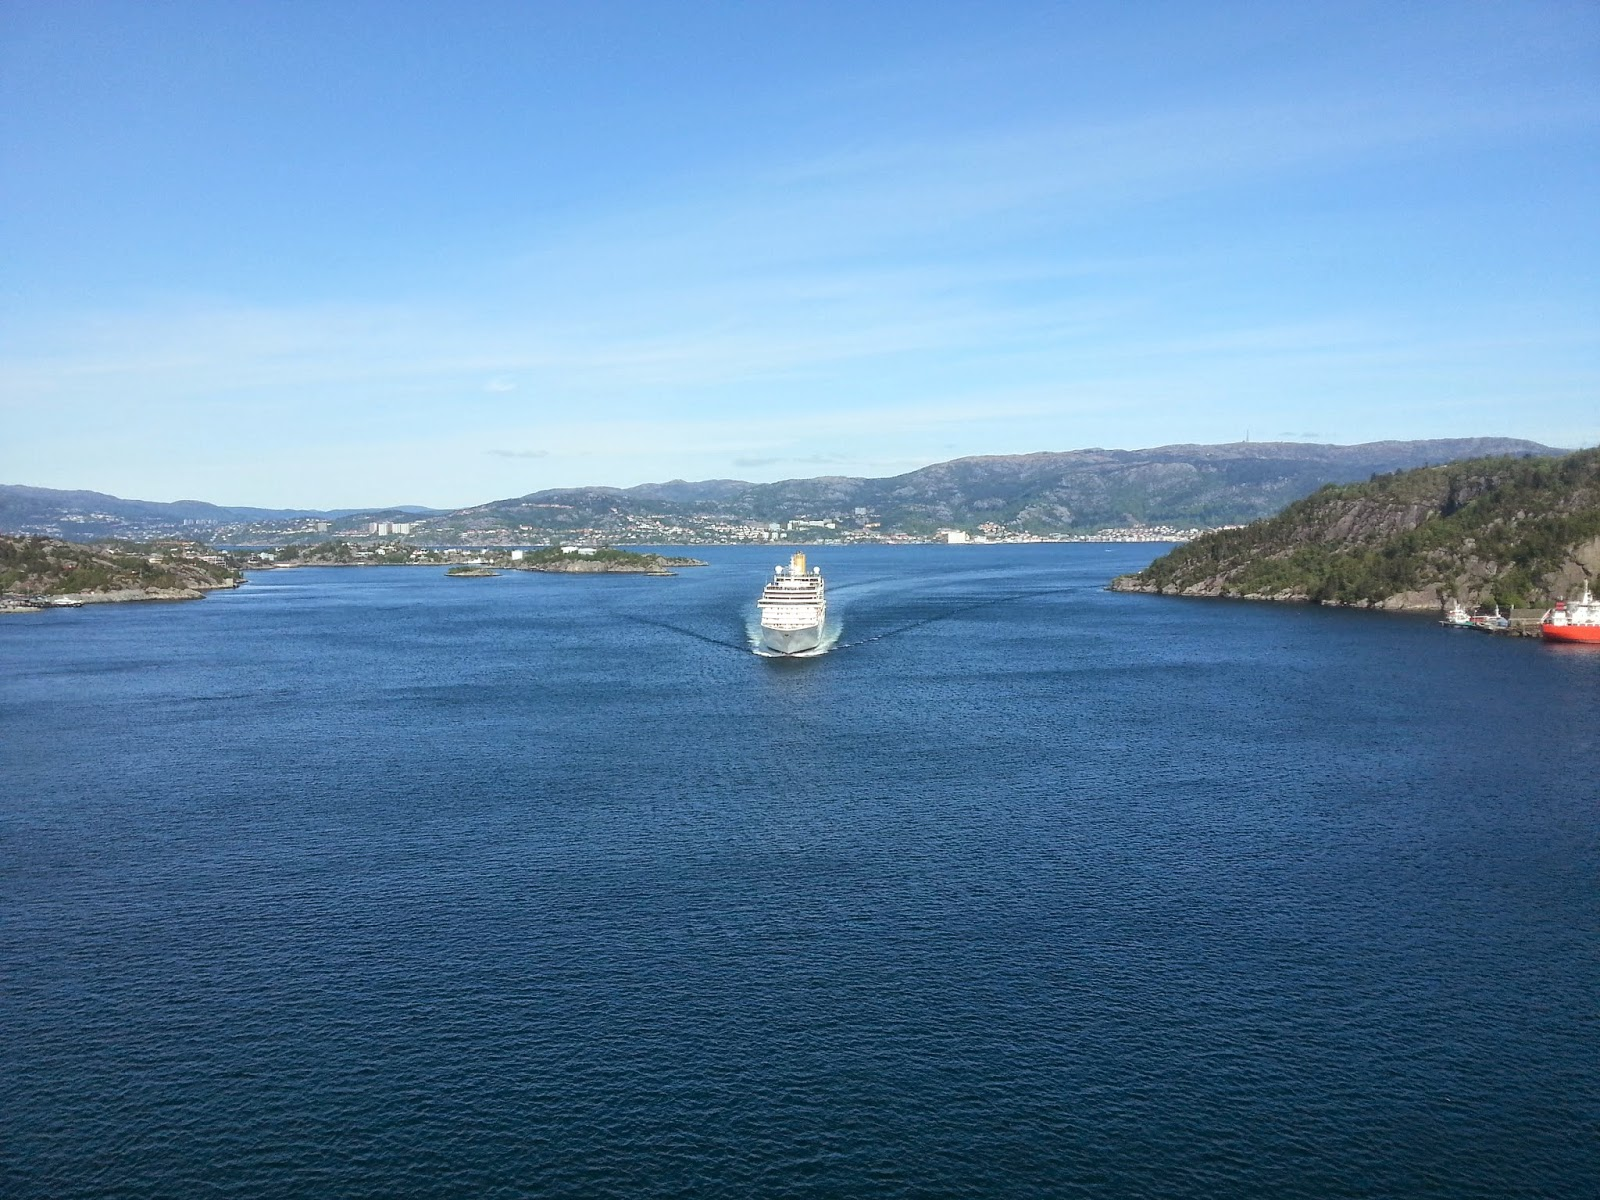 P&O Cruise Ship Arcadia departs Bergen, Norway